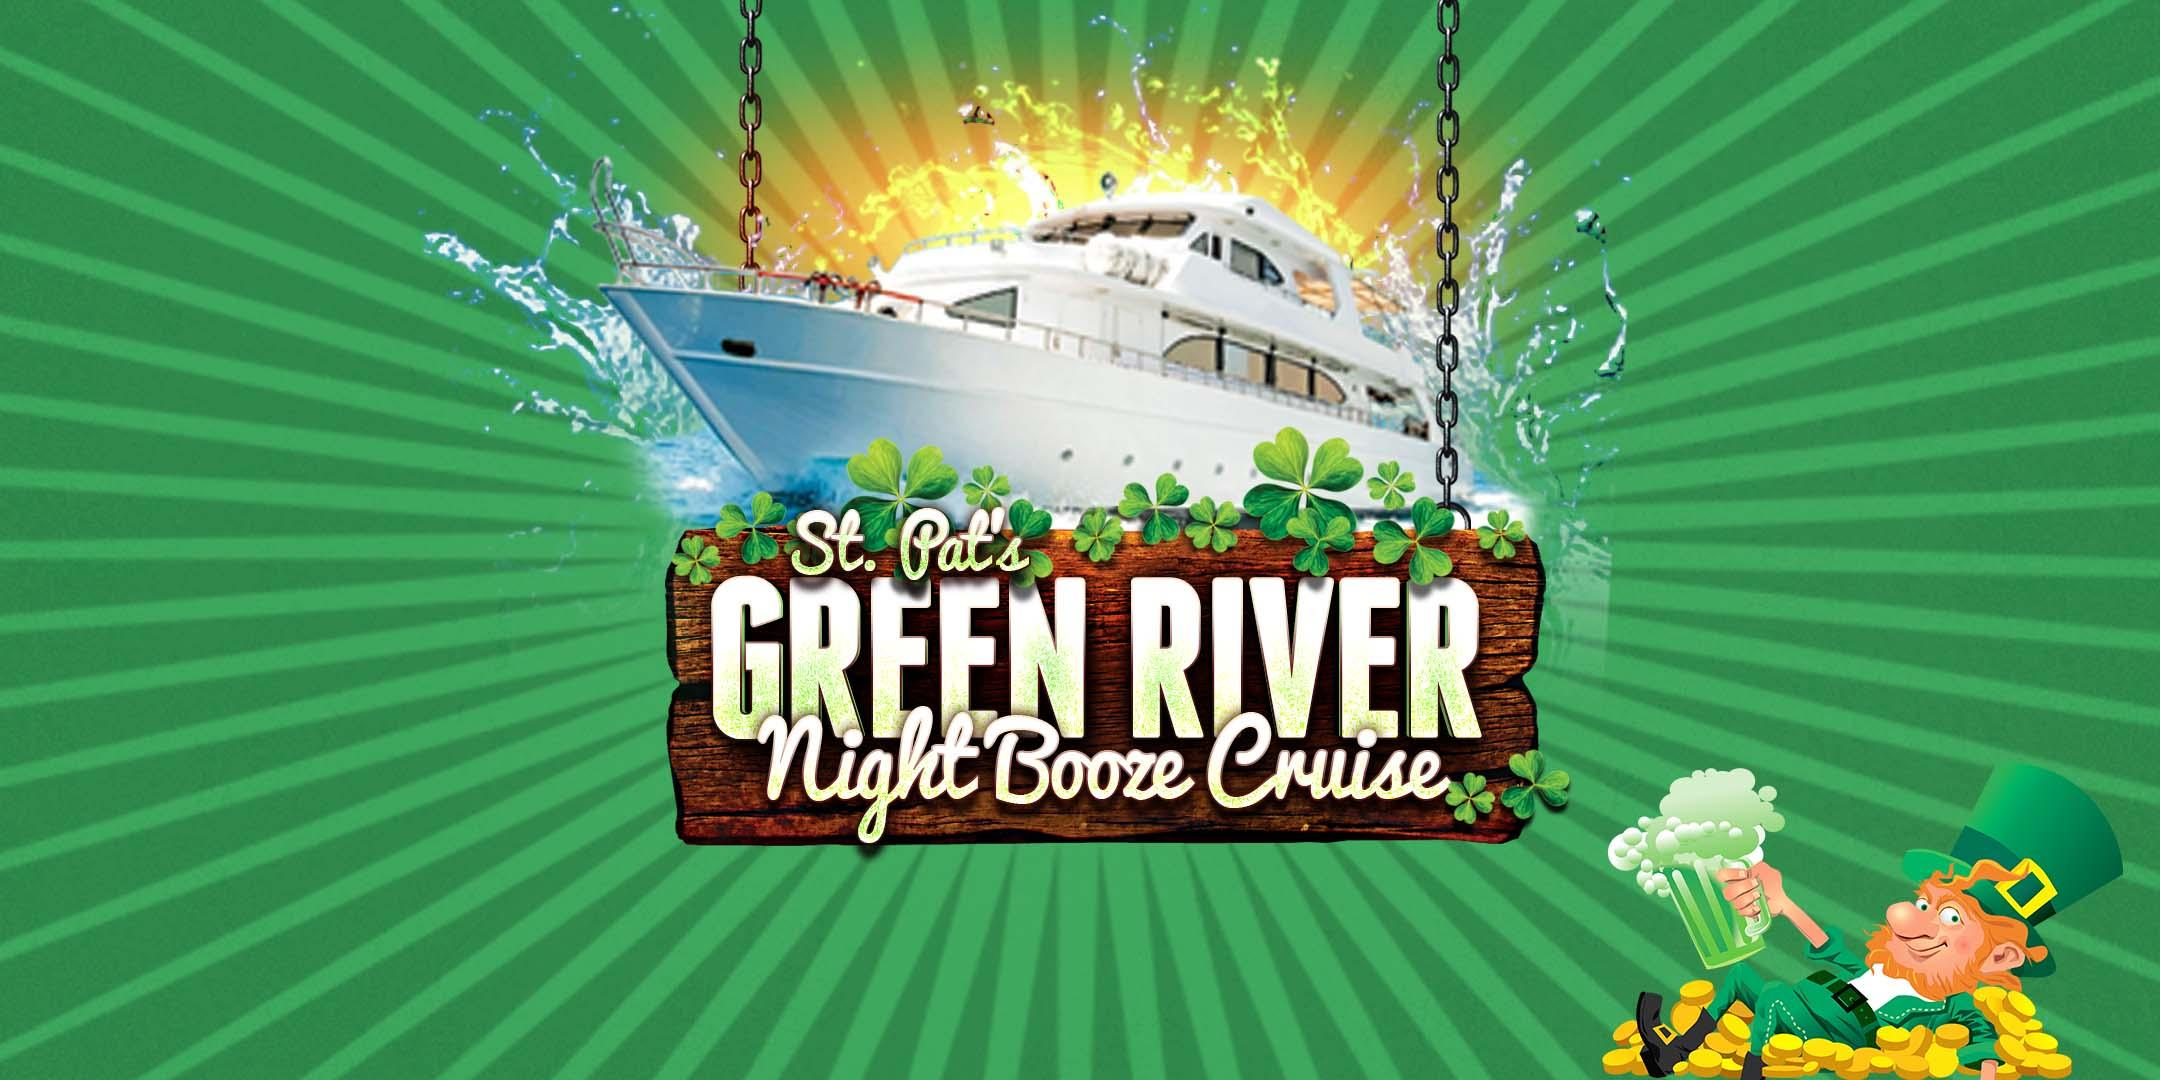 St. Pat's Green River Night Booze Cruise on March 17th! (8:30pm)